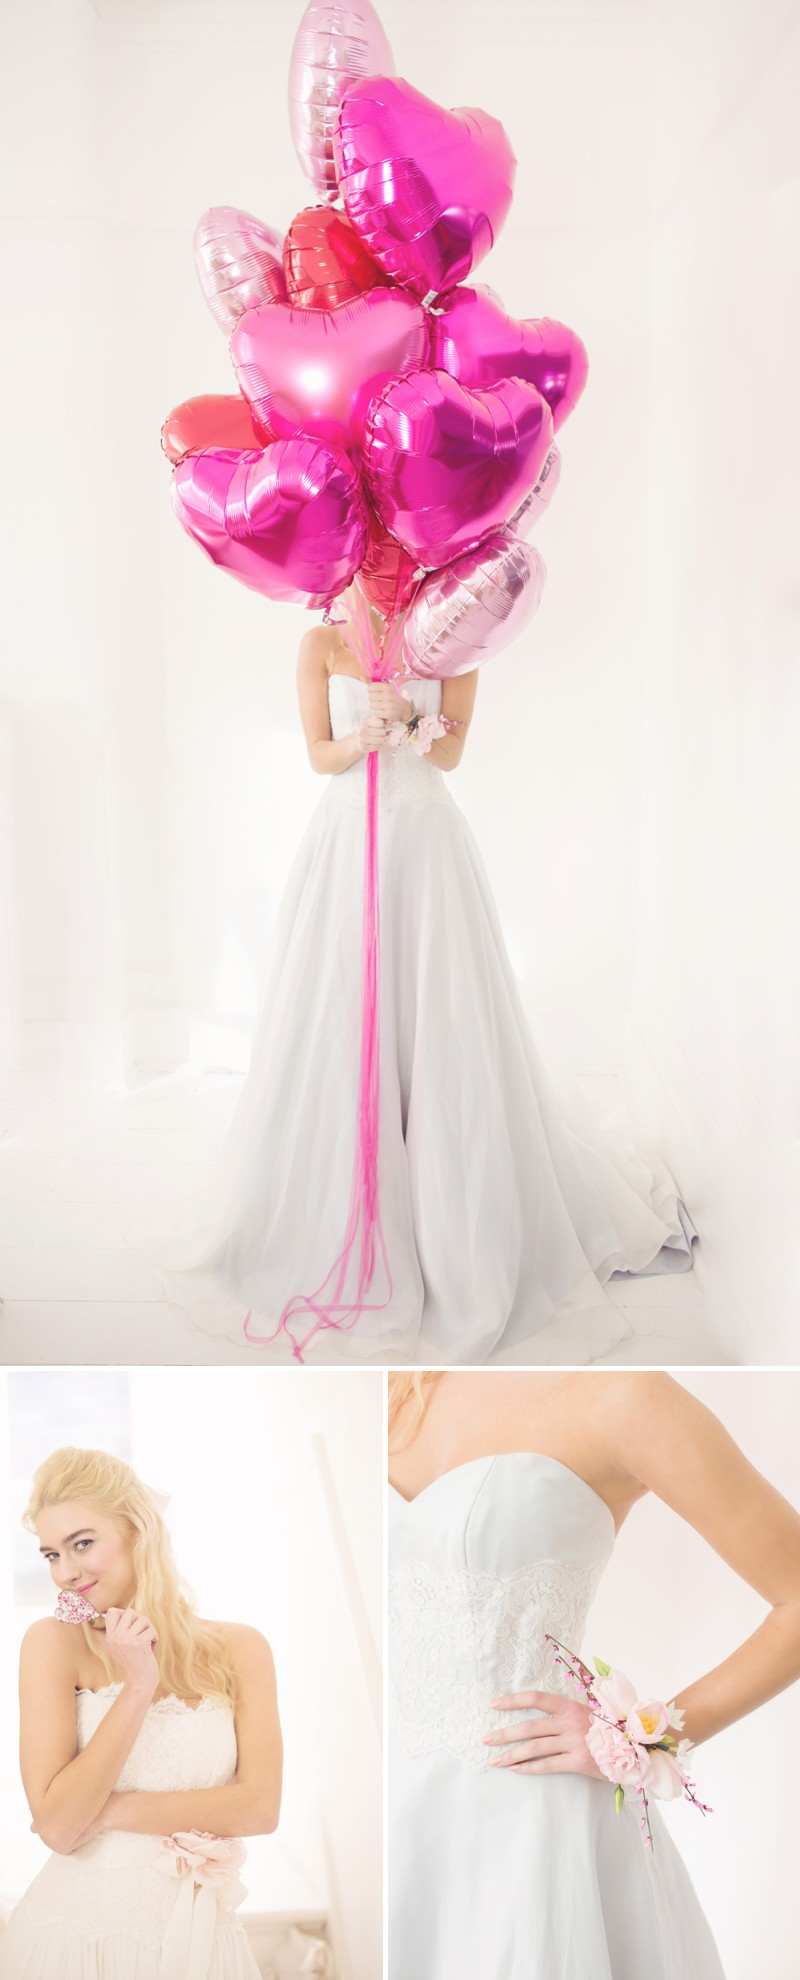 Love and Valentines Inspired Wedding Decor and Fashion Editorial By Rock My Wedding 0001 Enamoured.